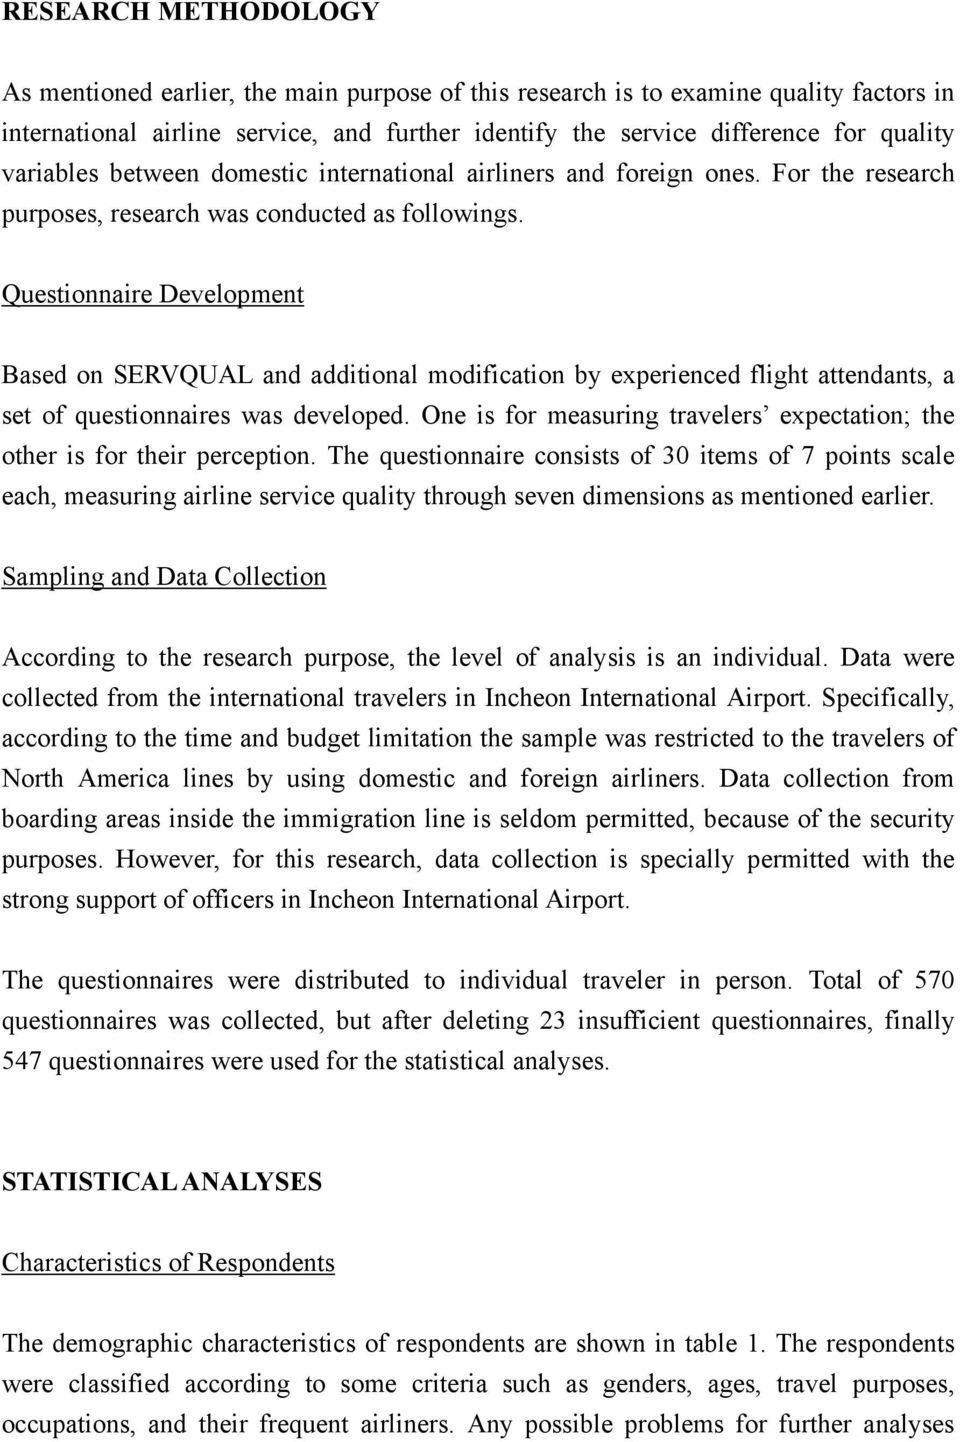 Questionnaire Development Based on SERVQUAL and additional modification by experienced flight attendants, a set of questionnaires was developed.